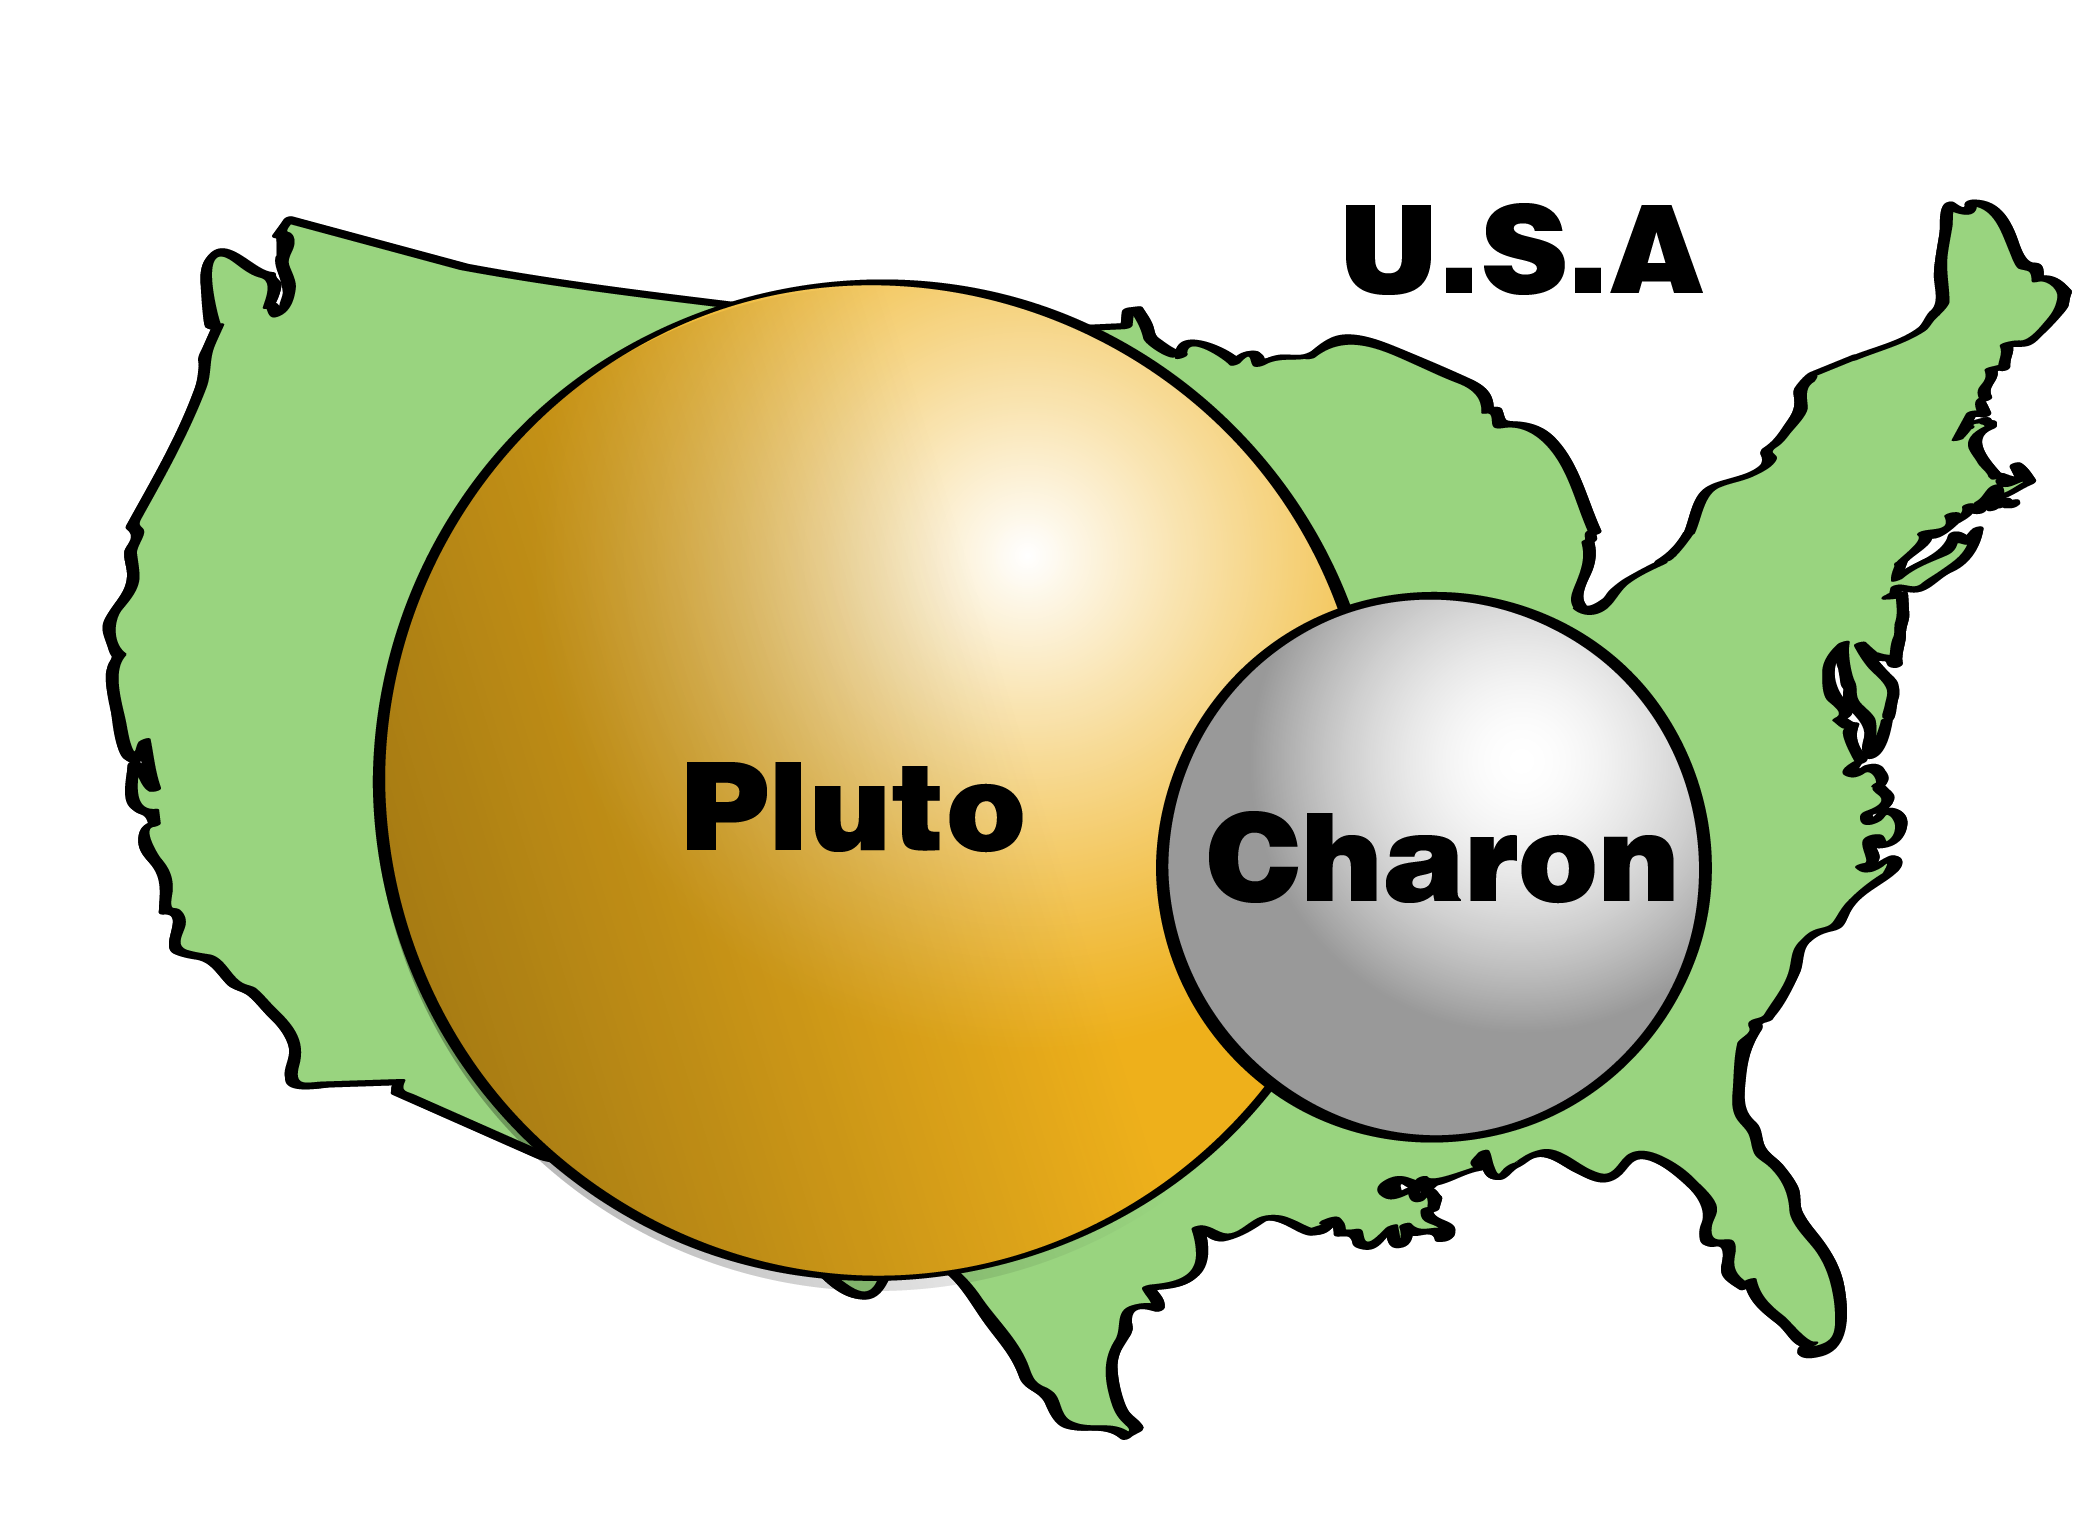 Pluto and Charon compared to the USA.